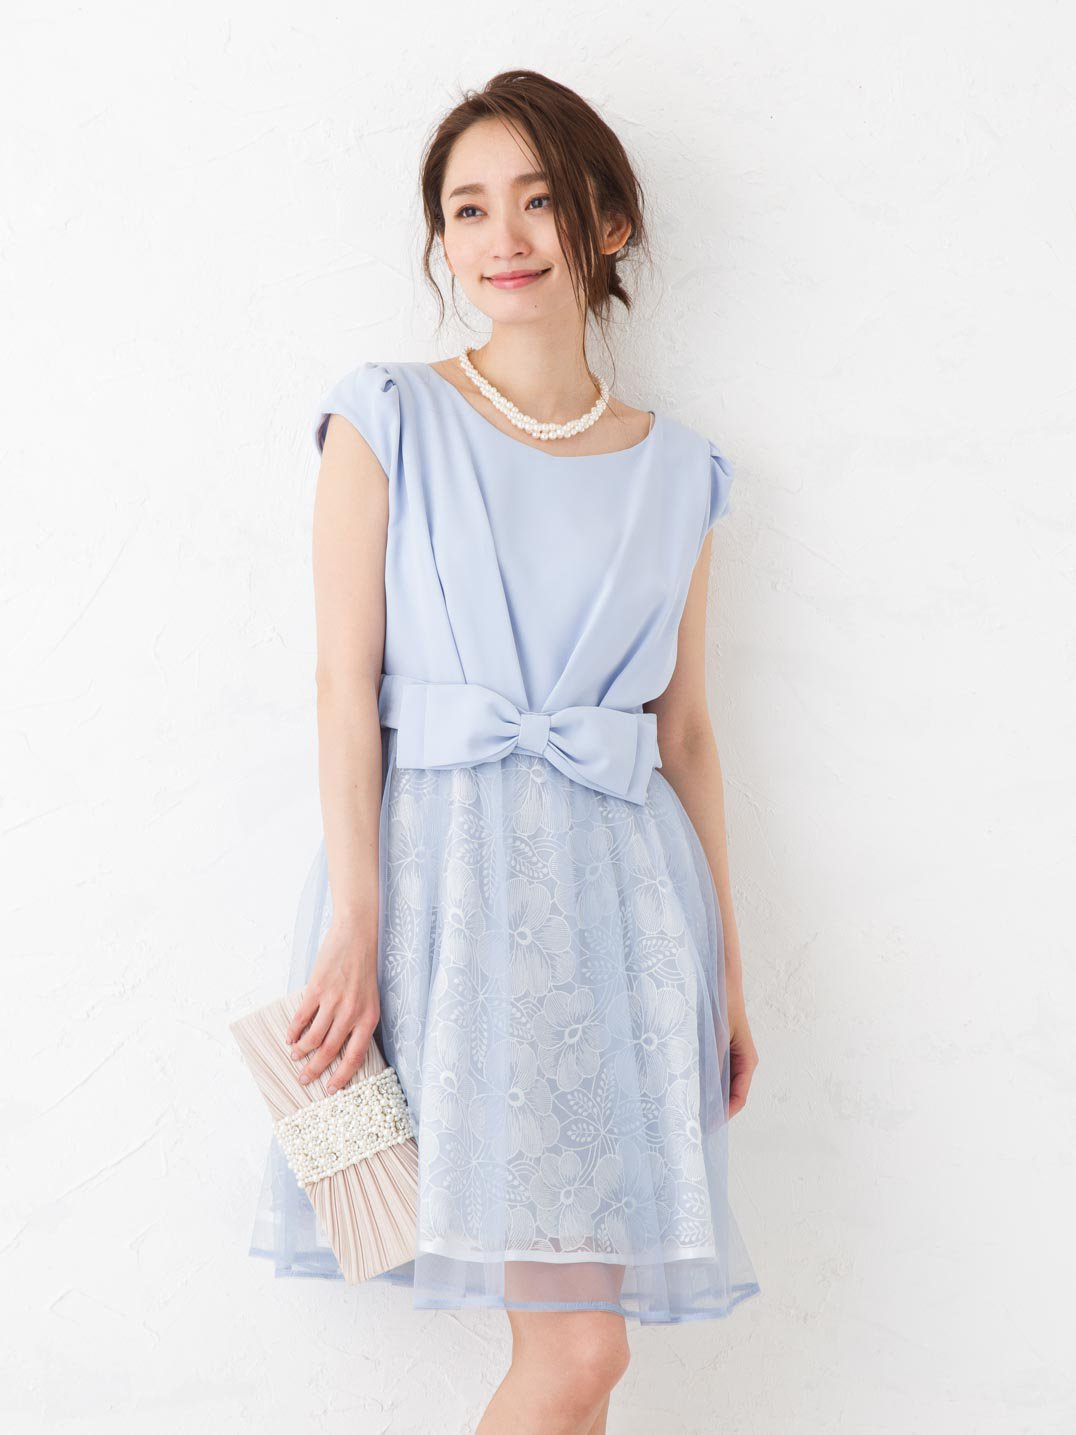 a67217cebd878 Debut de Fiore by LAISSE PASSE ドレスのレンタル - DRESS SHARE (DO0641)